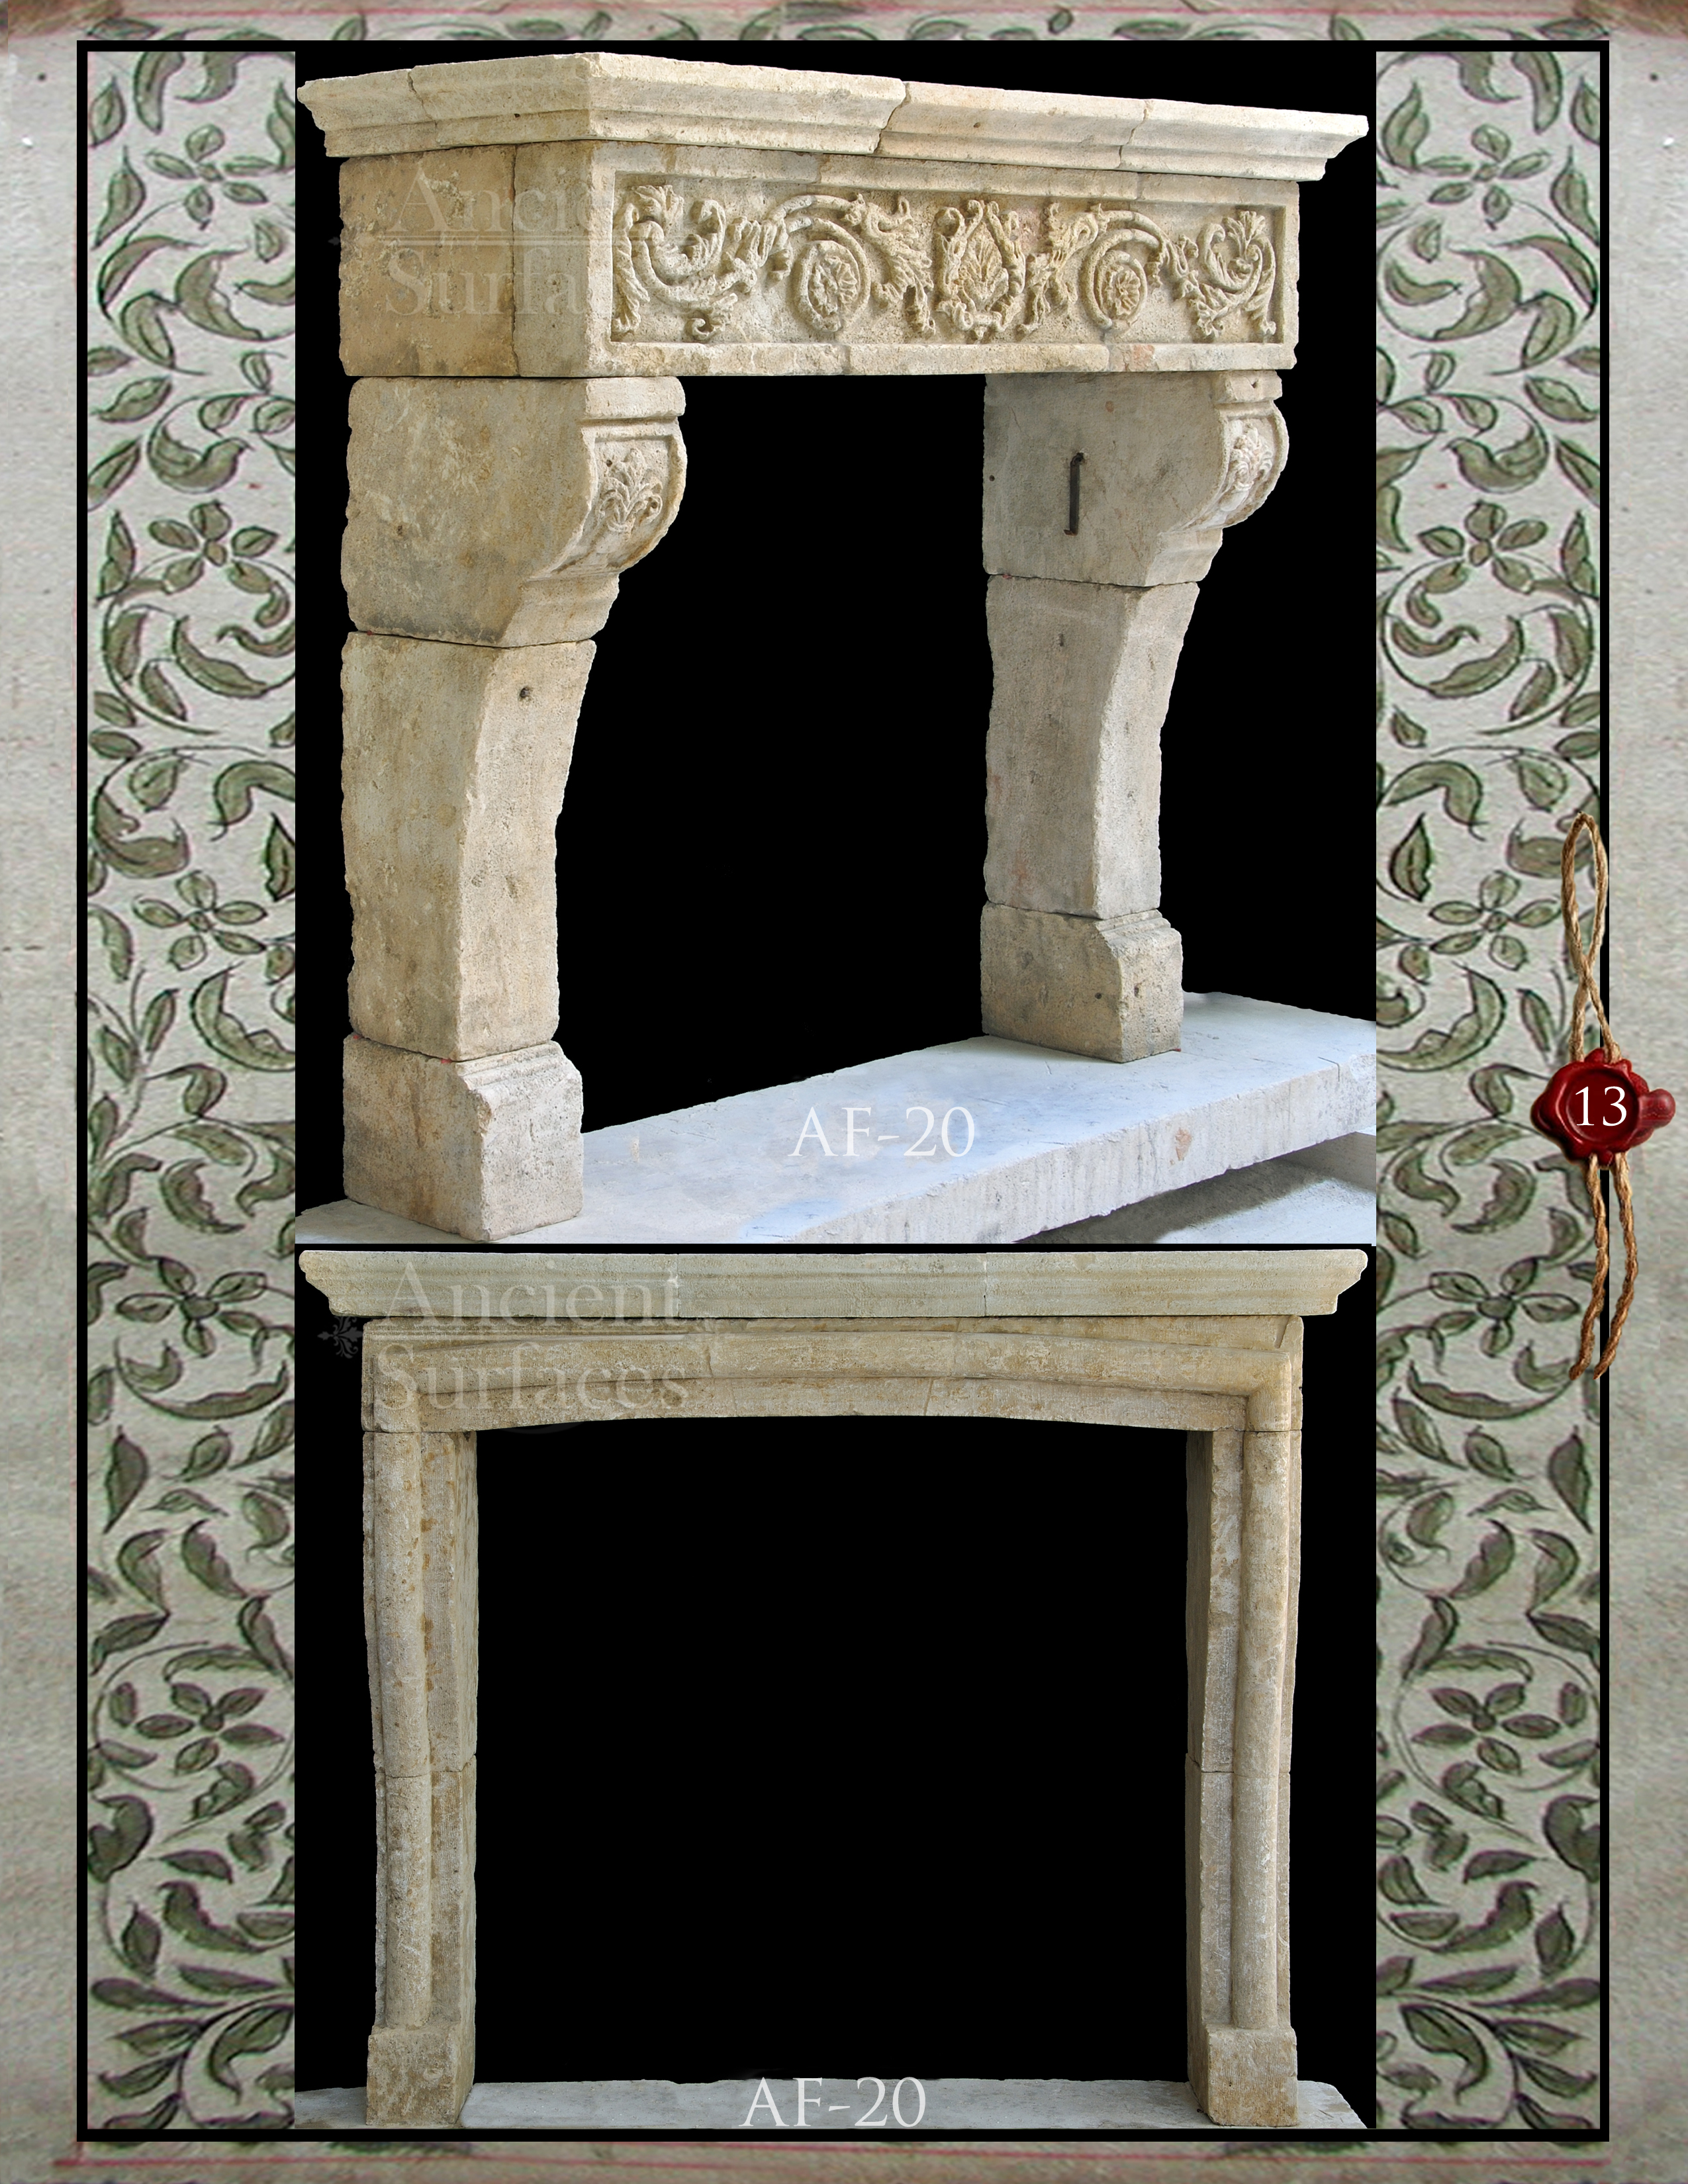 shropshire type tops fireplaces fireplace honed product search worktops victorian hos stone zimbabwe granite tiles table black